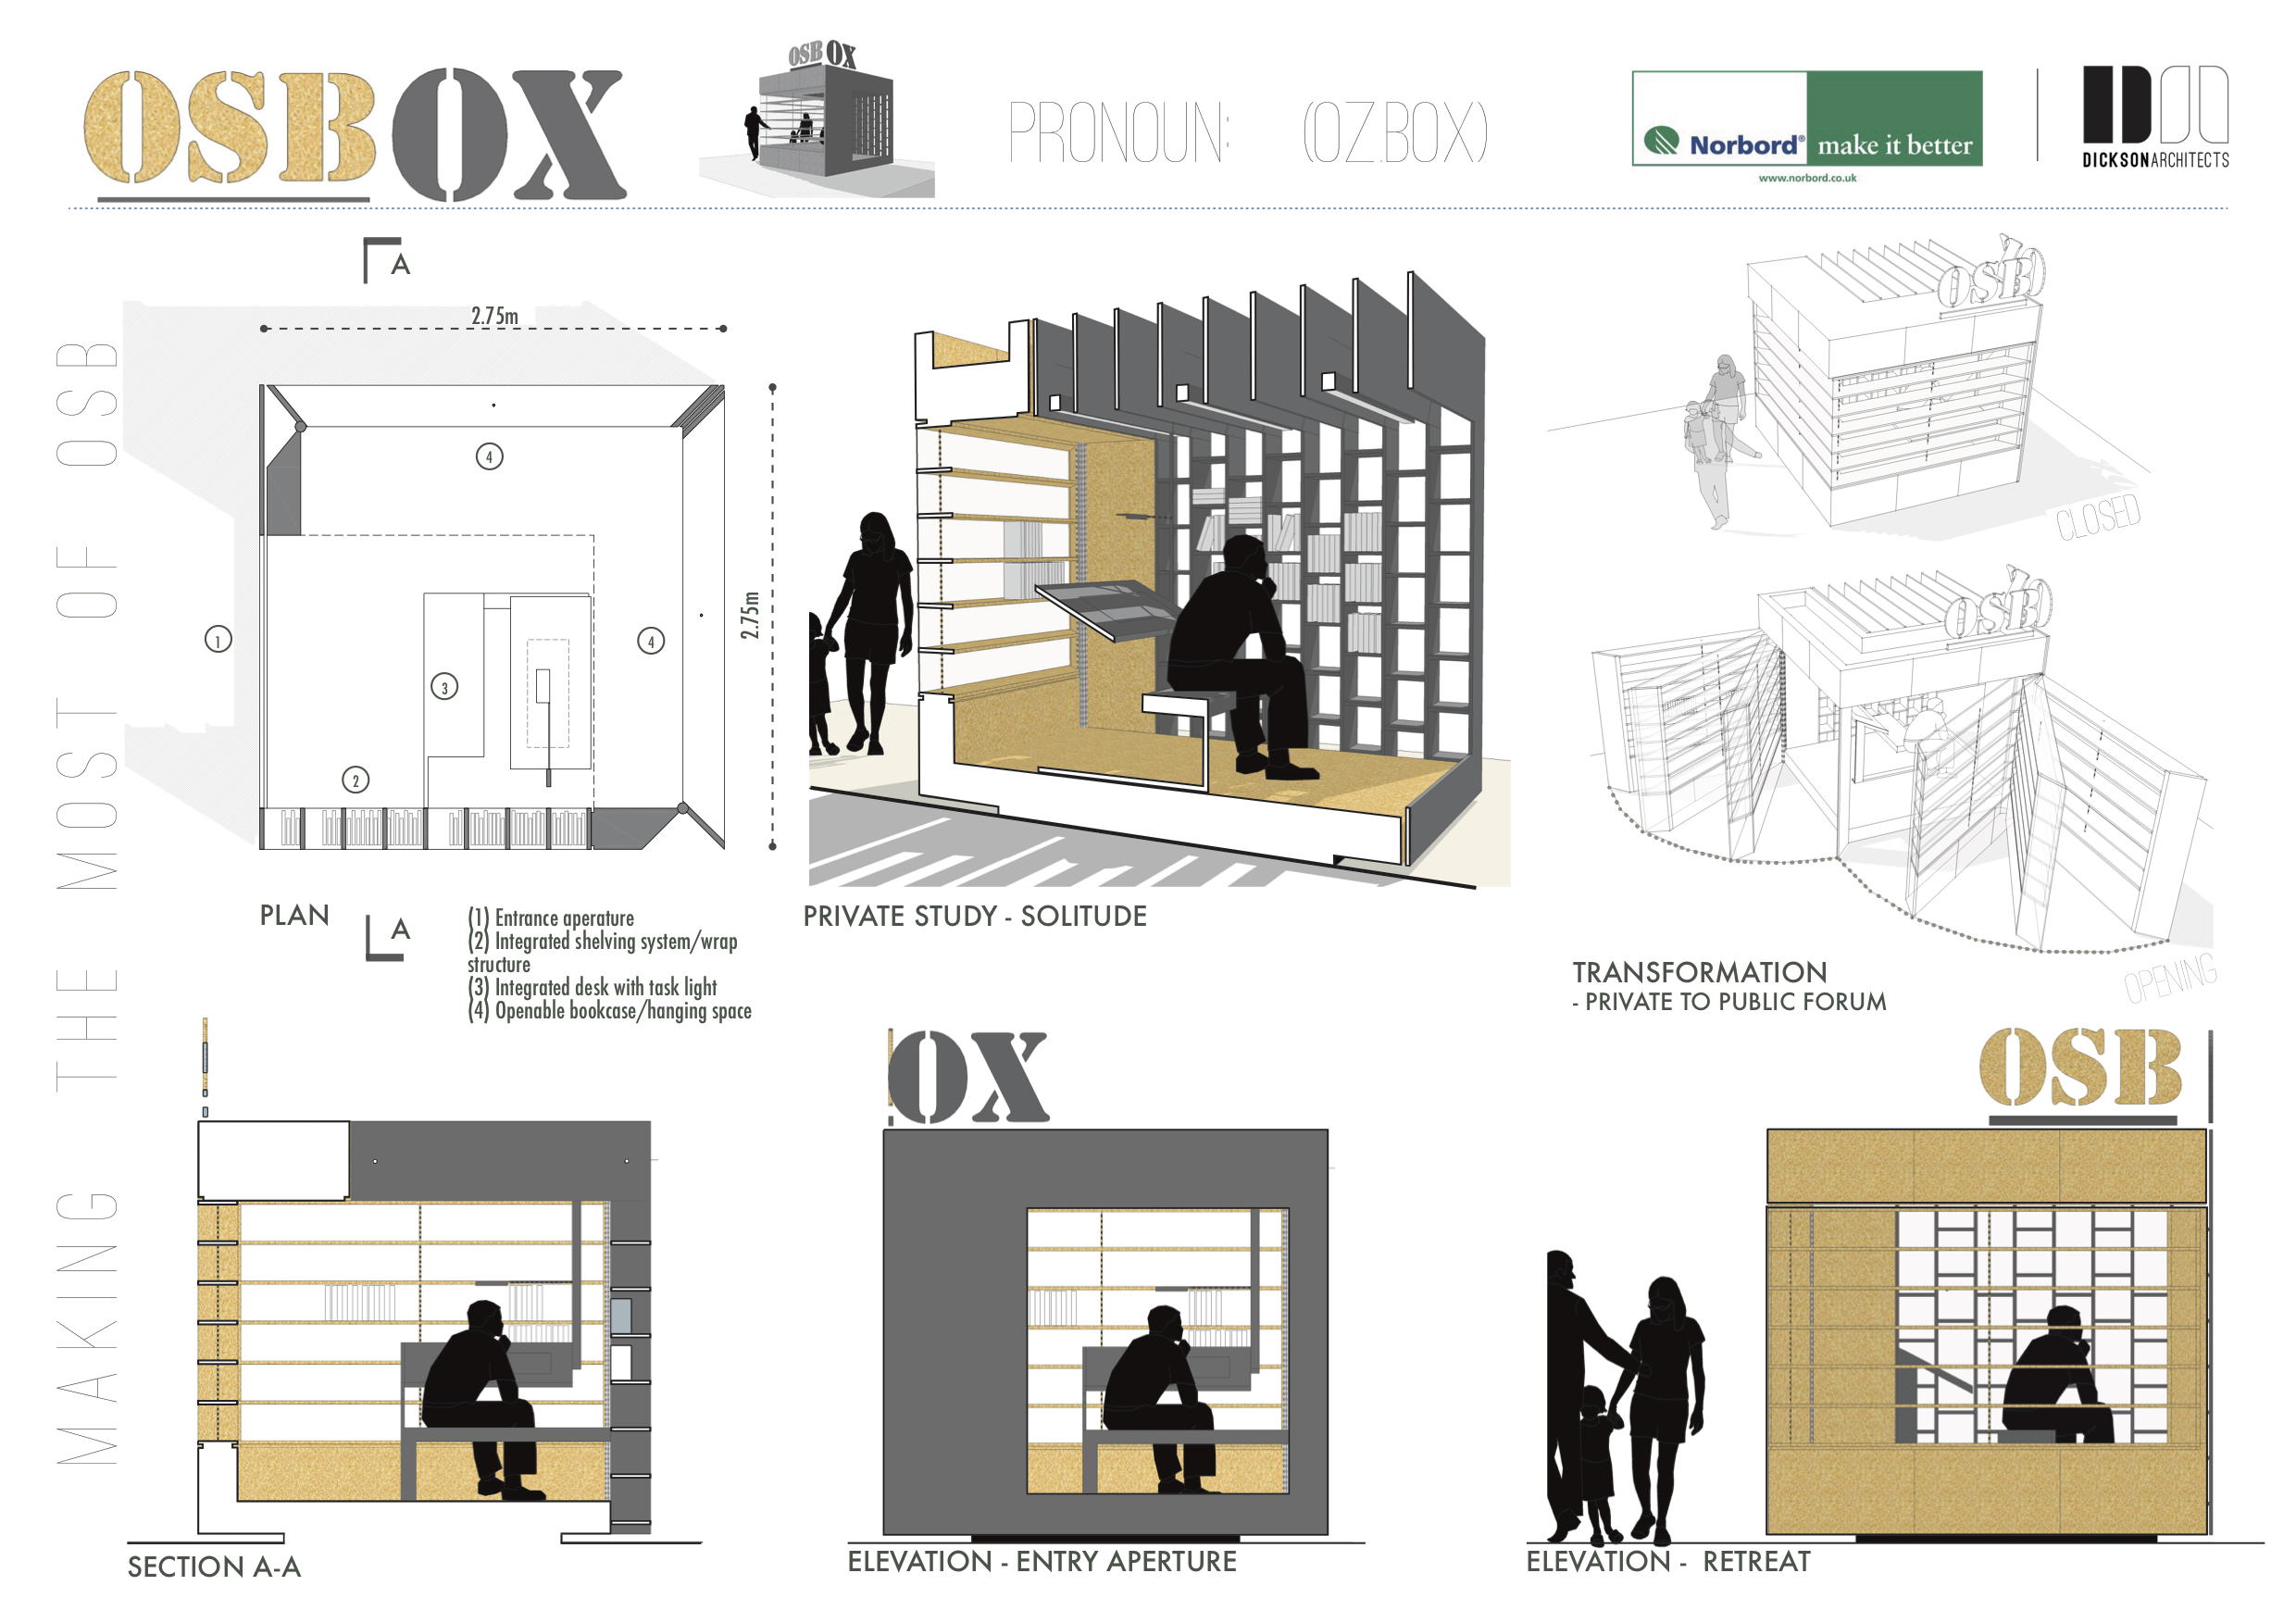 Dickson Architects - Room within a Room - osbox 1